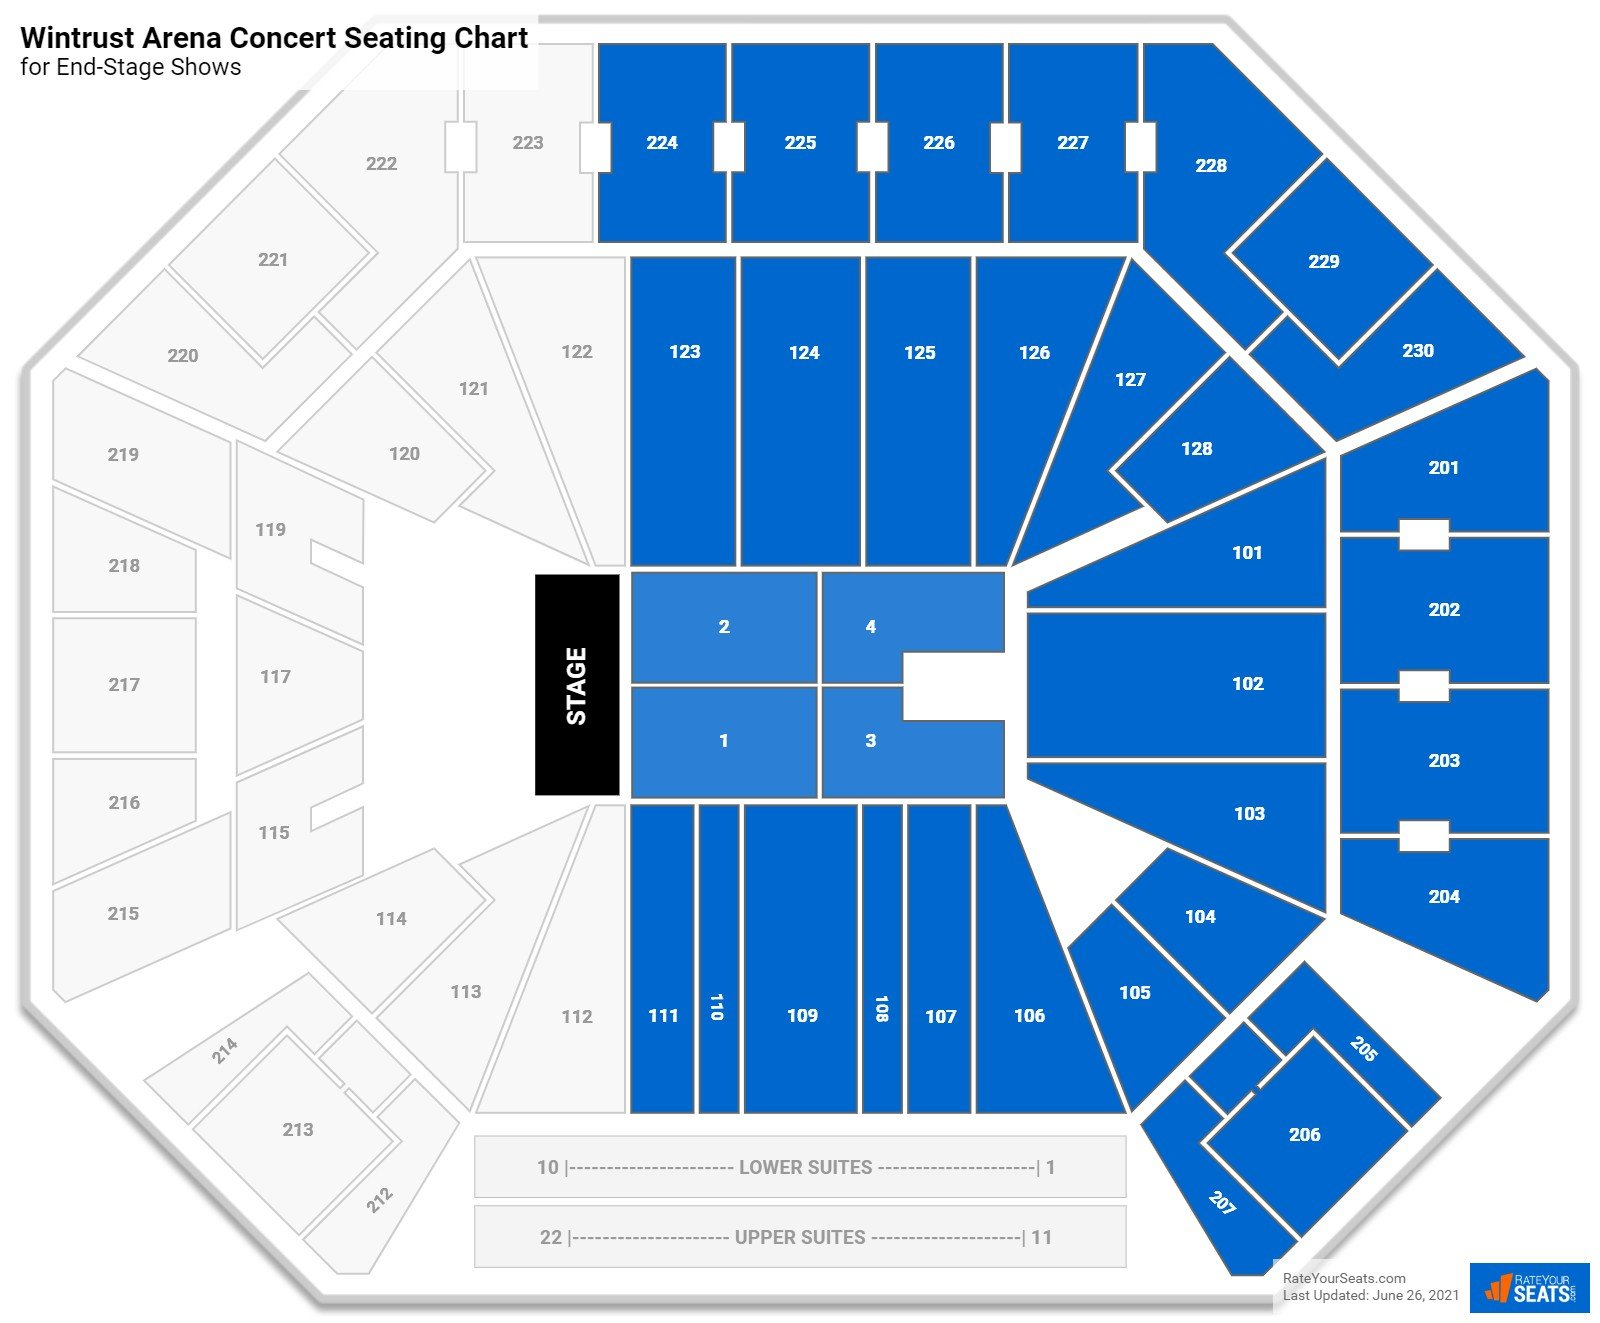 Wintrust Arena Seating Chart for Concerts